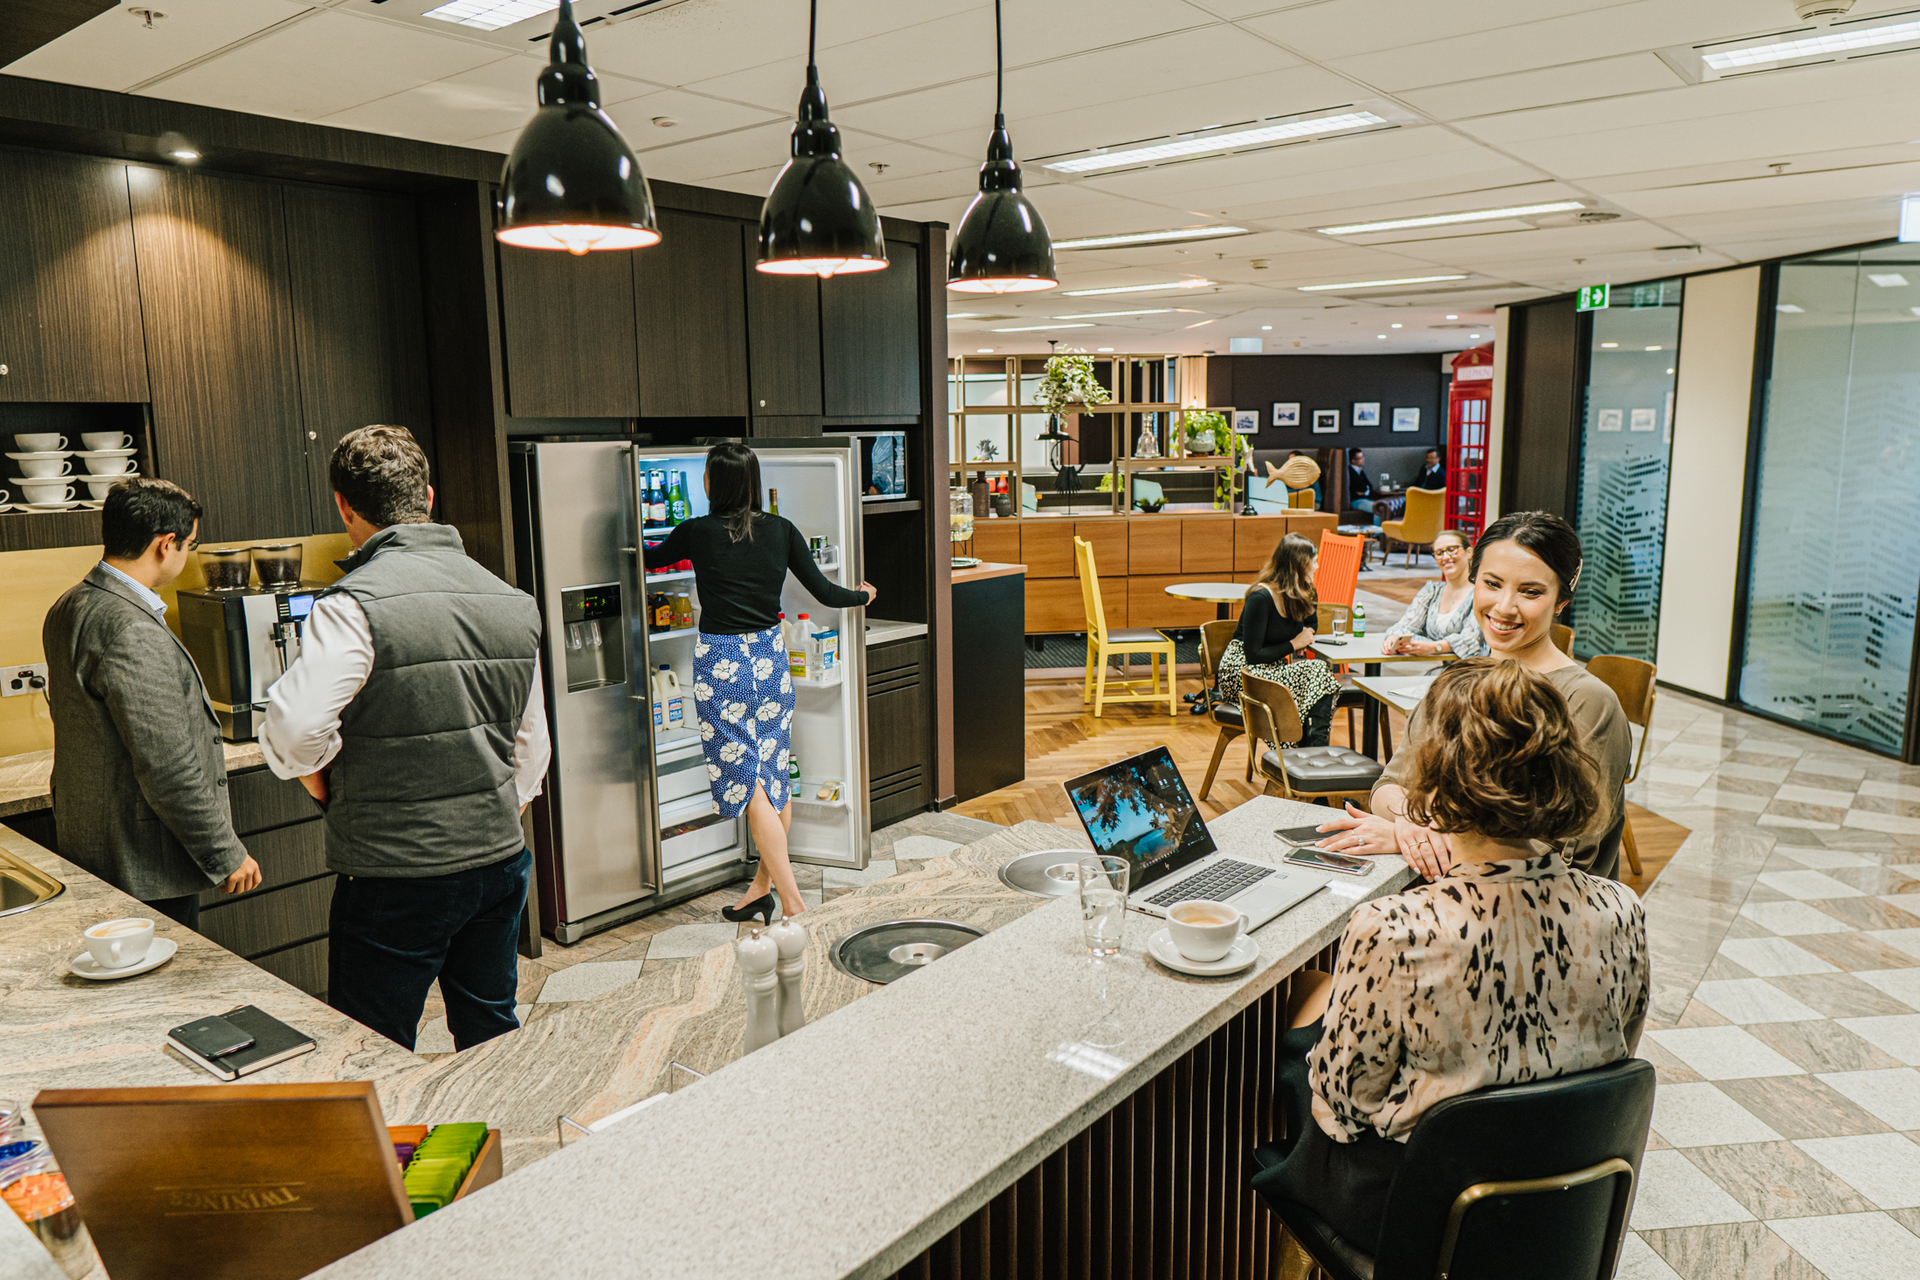 Executive 2-person private workspace with unlimited access to coworking breakout areas